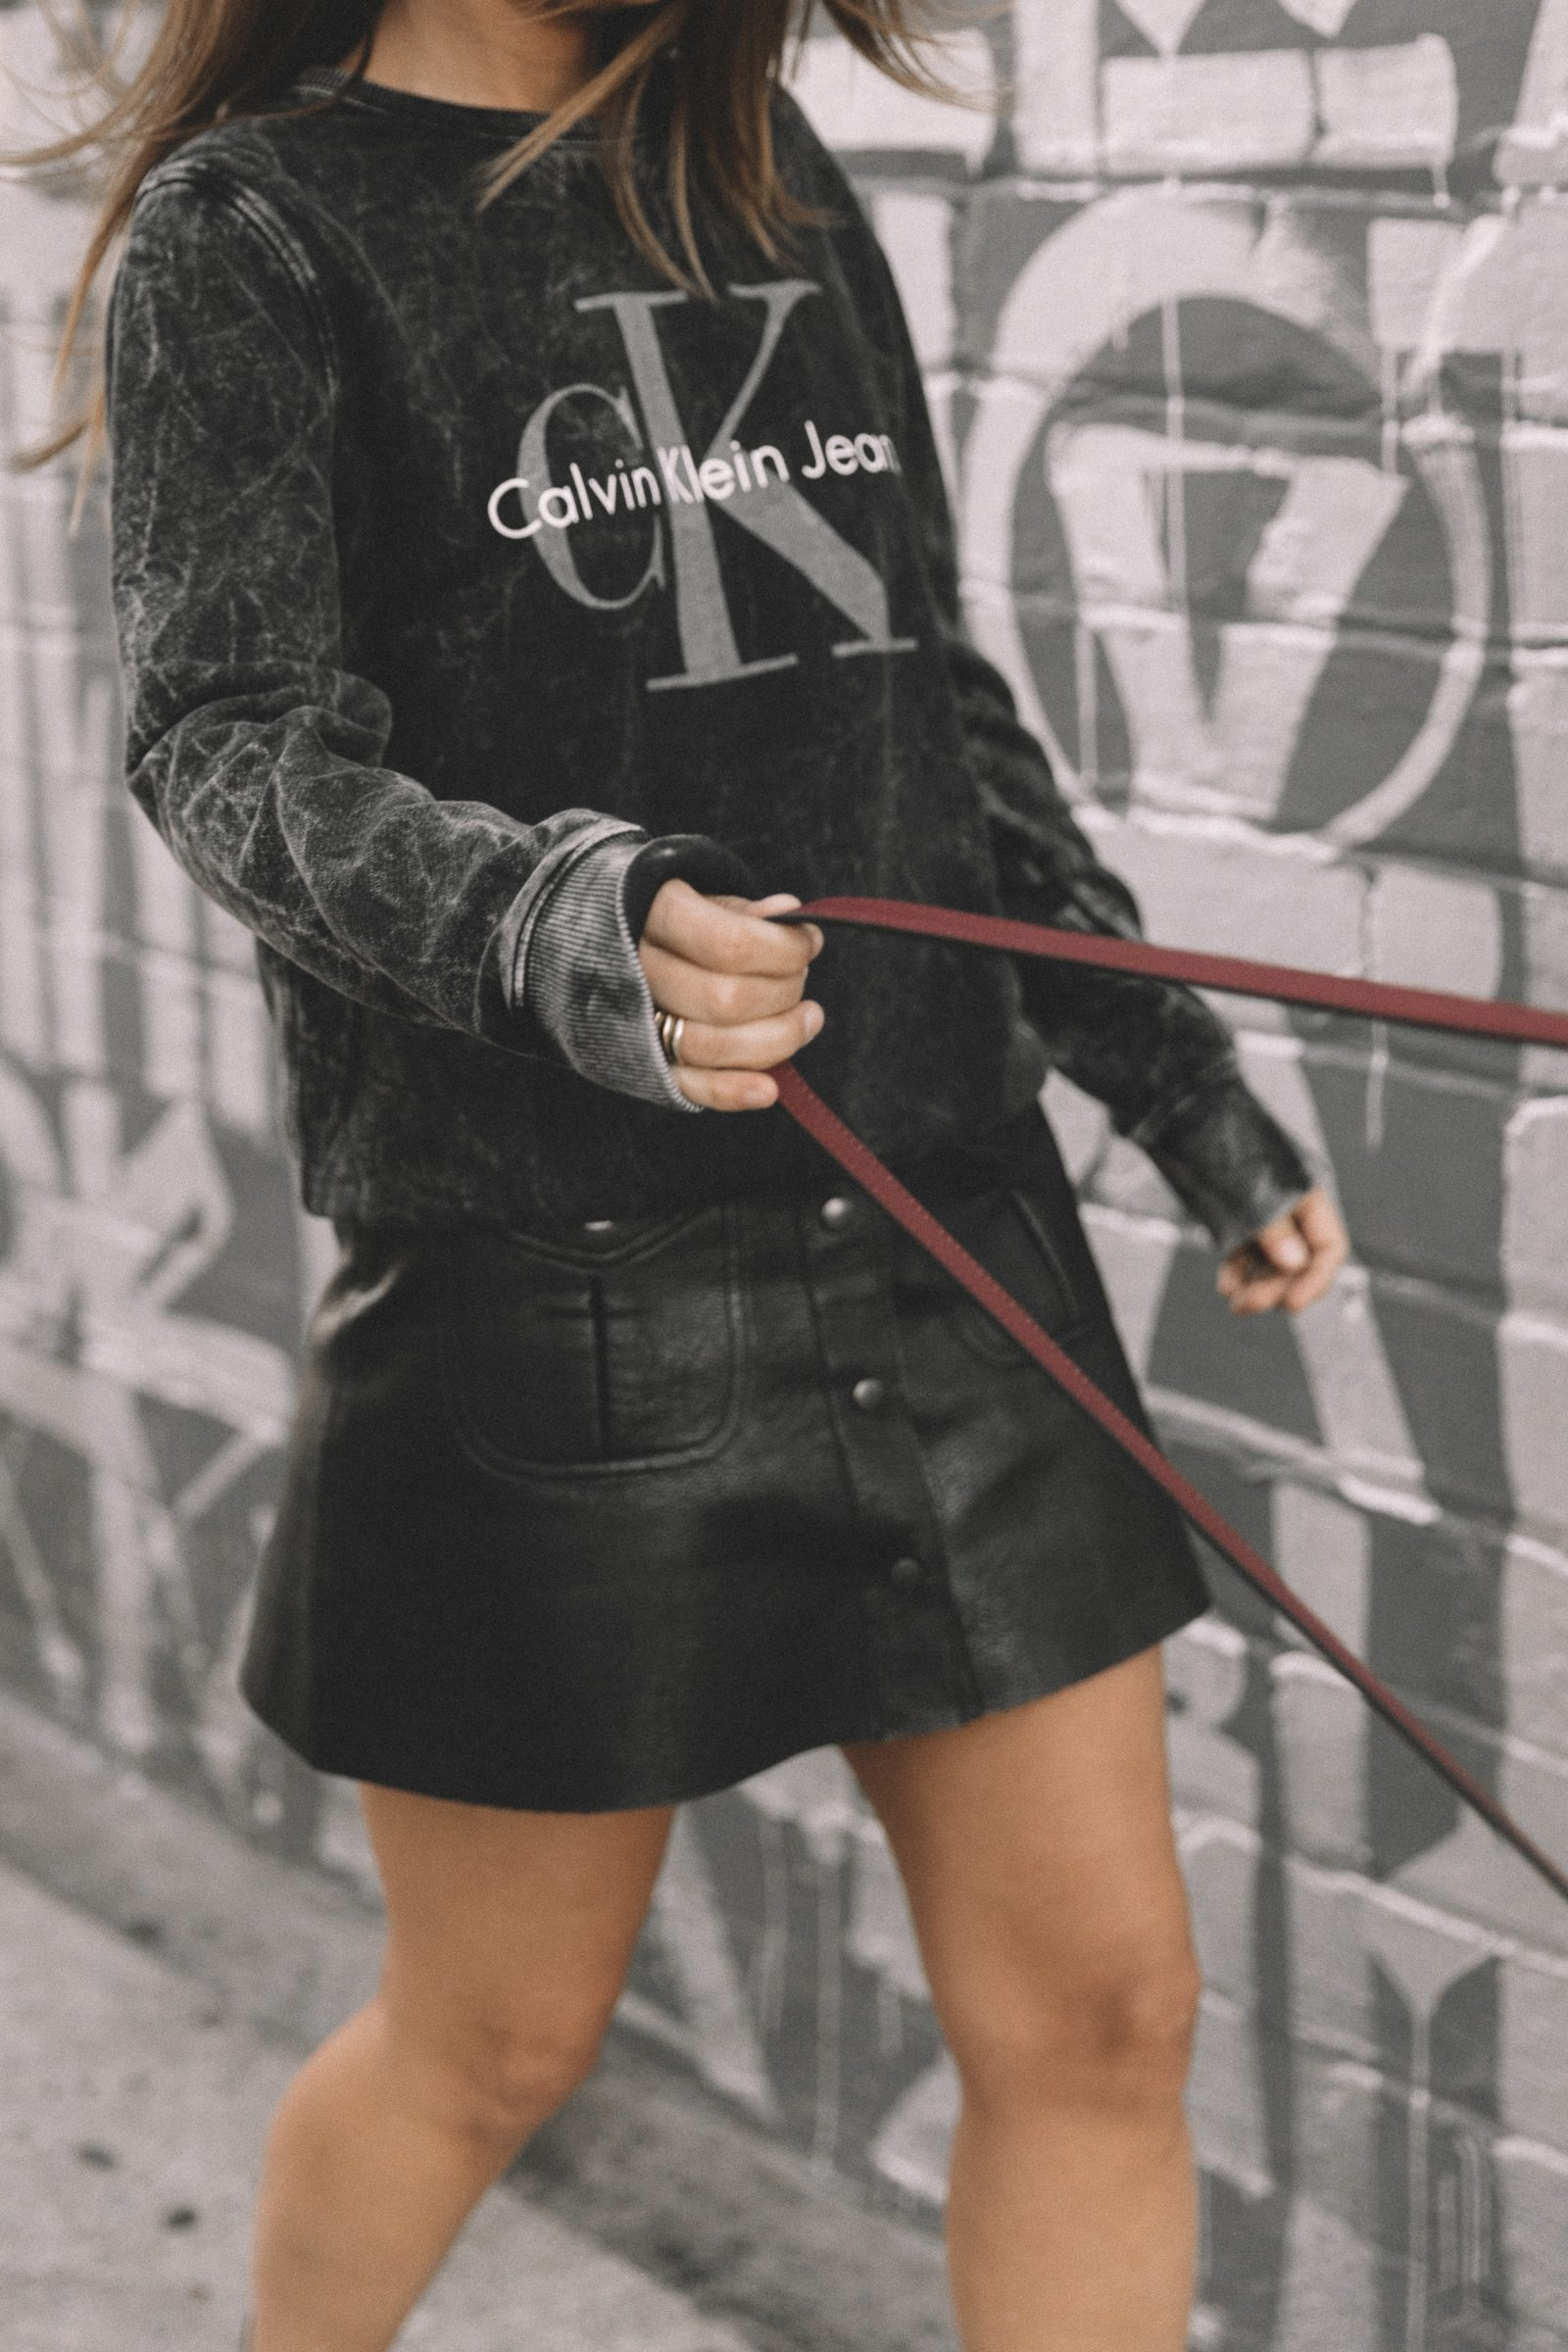 calvin_klein_bag-burgundy_bag-ck_sweatshirt-leather_shirt-total_black_outfit-street_style-los_angeles-collage_vintage-27